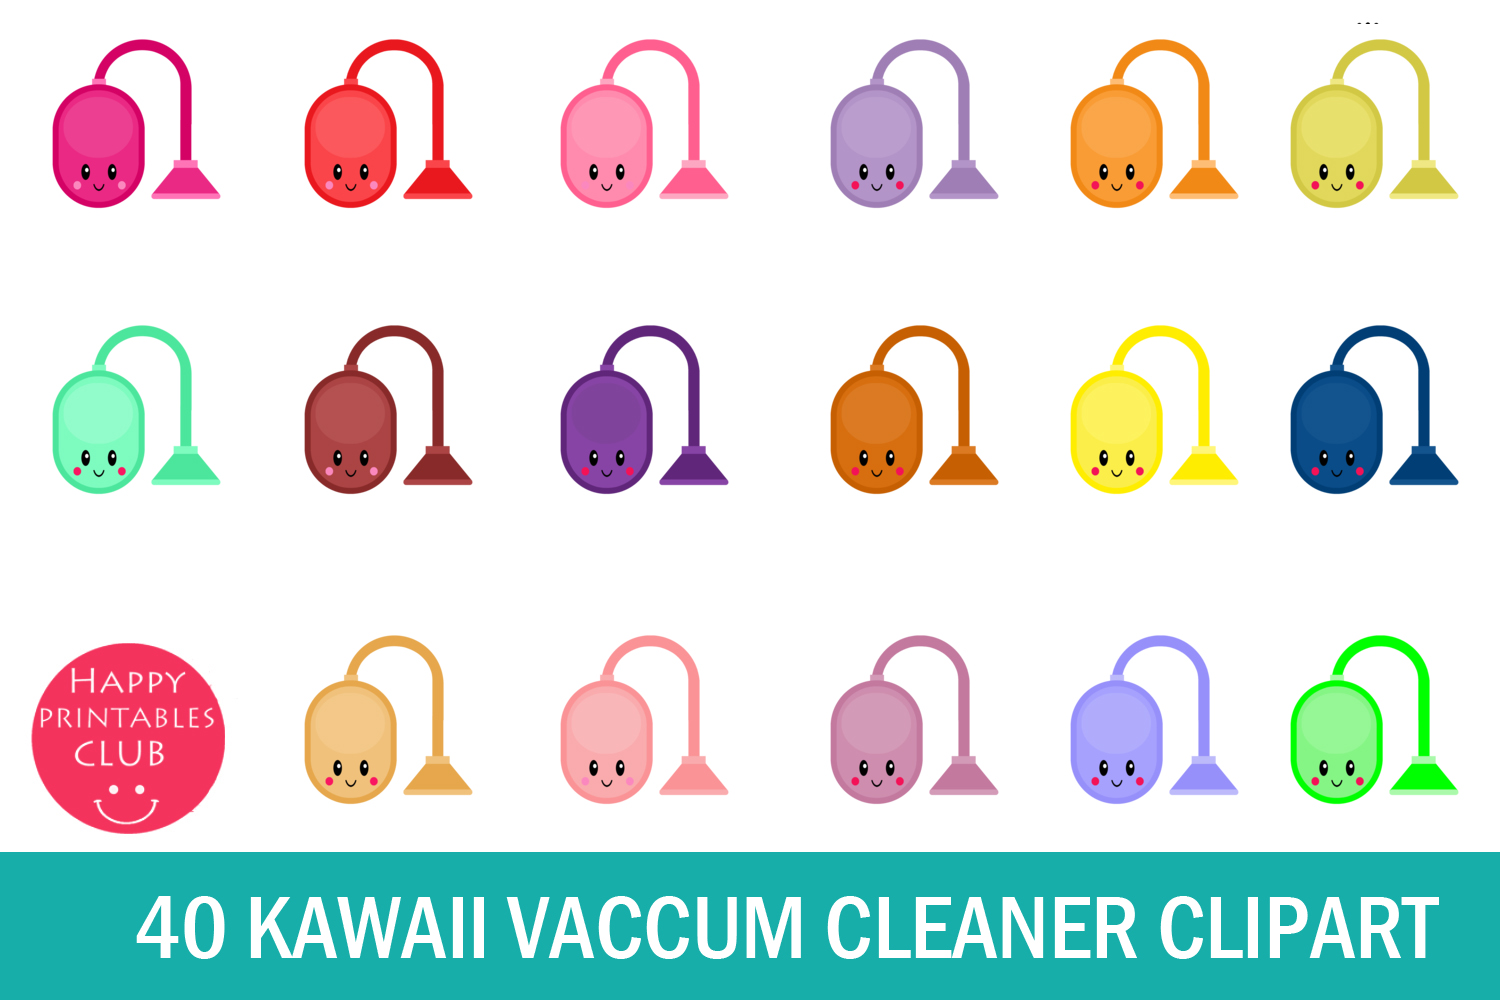 40 Kawaii Vacuum Cleaner Clipart- Vacuum Cleaner Clipart PNG example image 1